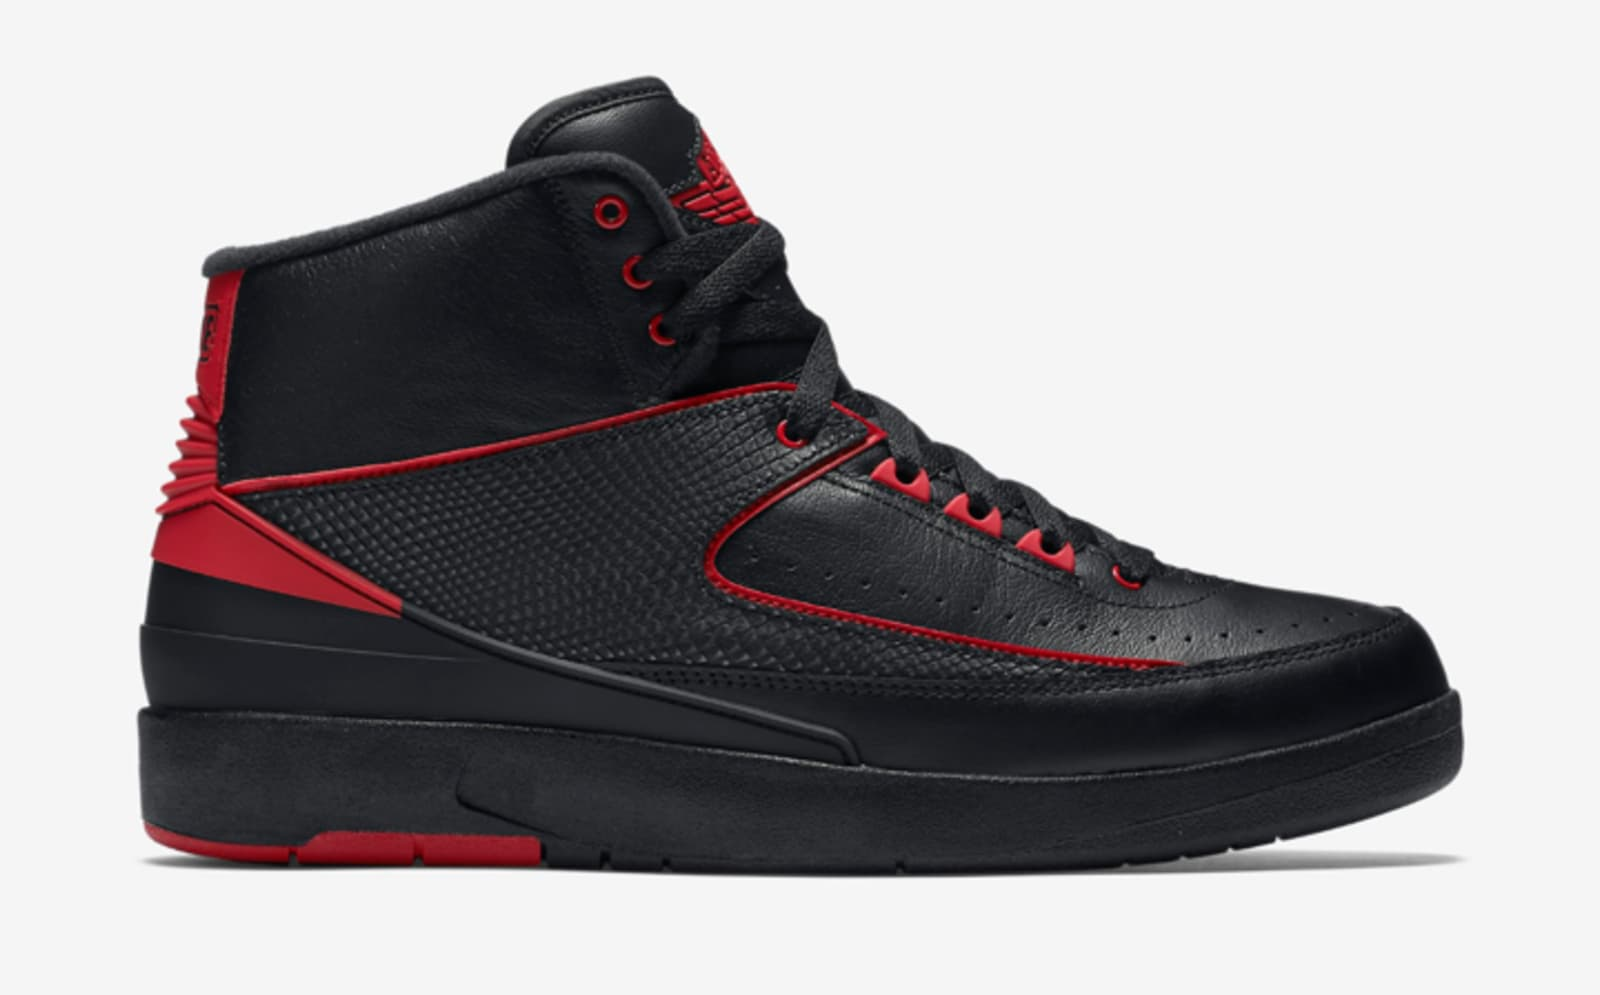 d5b5381ec357 Great Buys  The 20 Best Sneakers for the Money